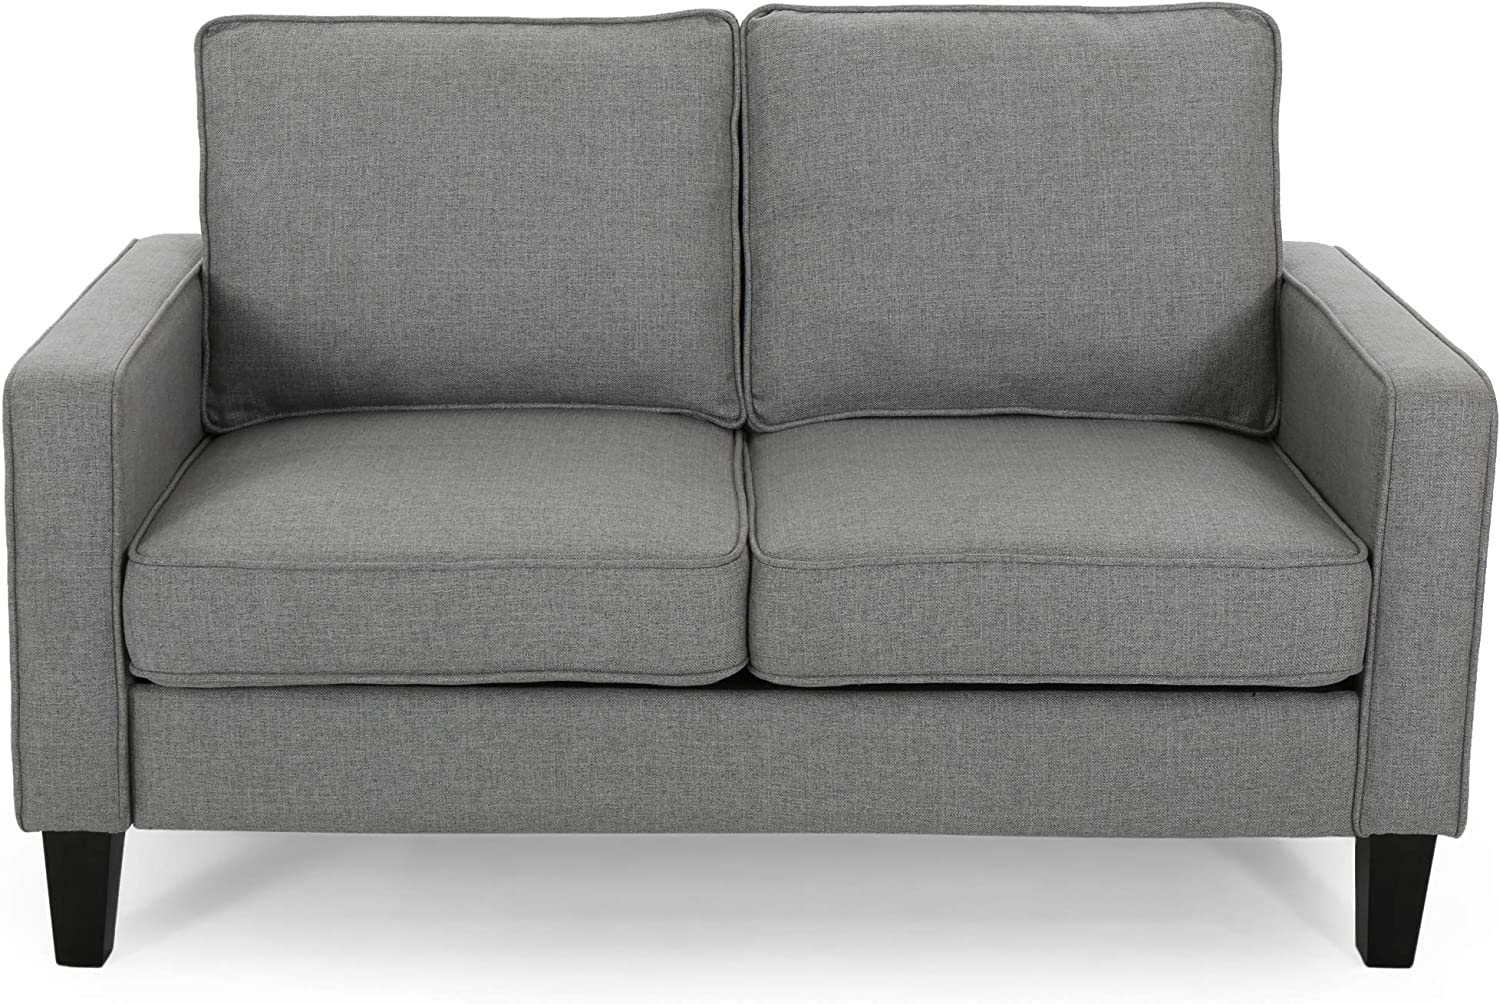 Christopher Knight Home Ophelia Traditional Fabric Loveseat, Gray